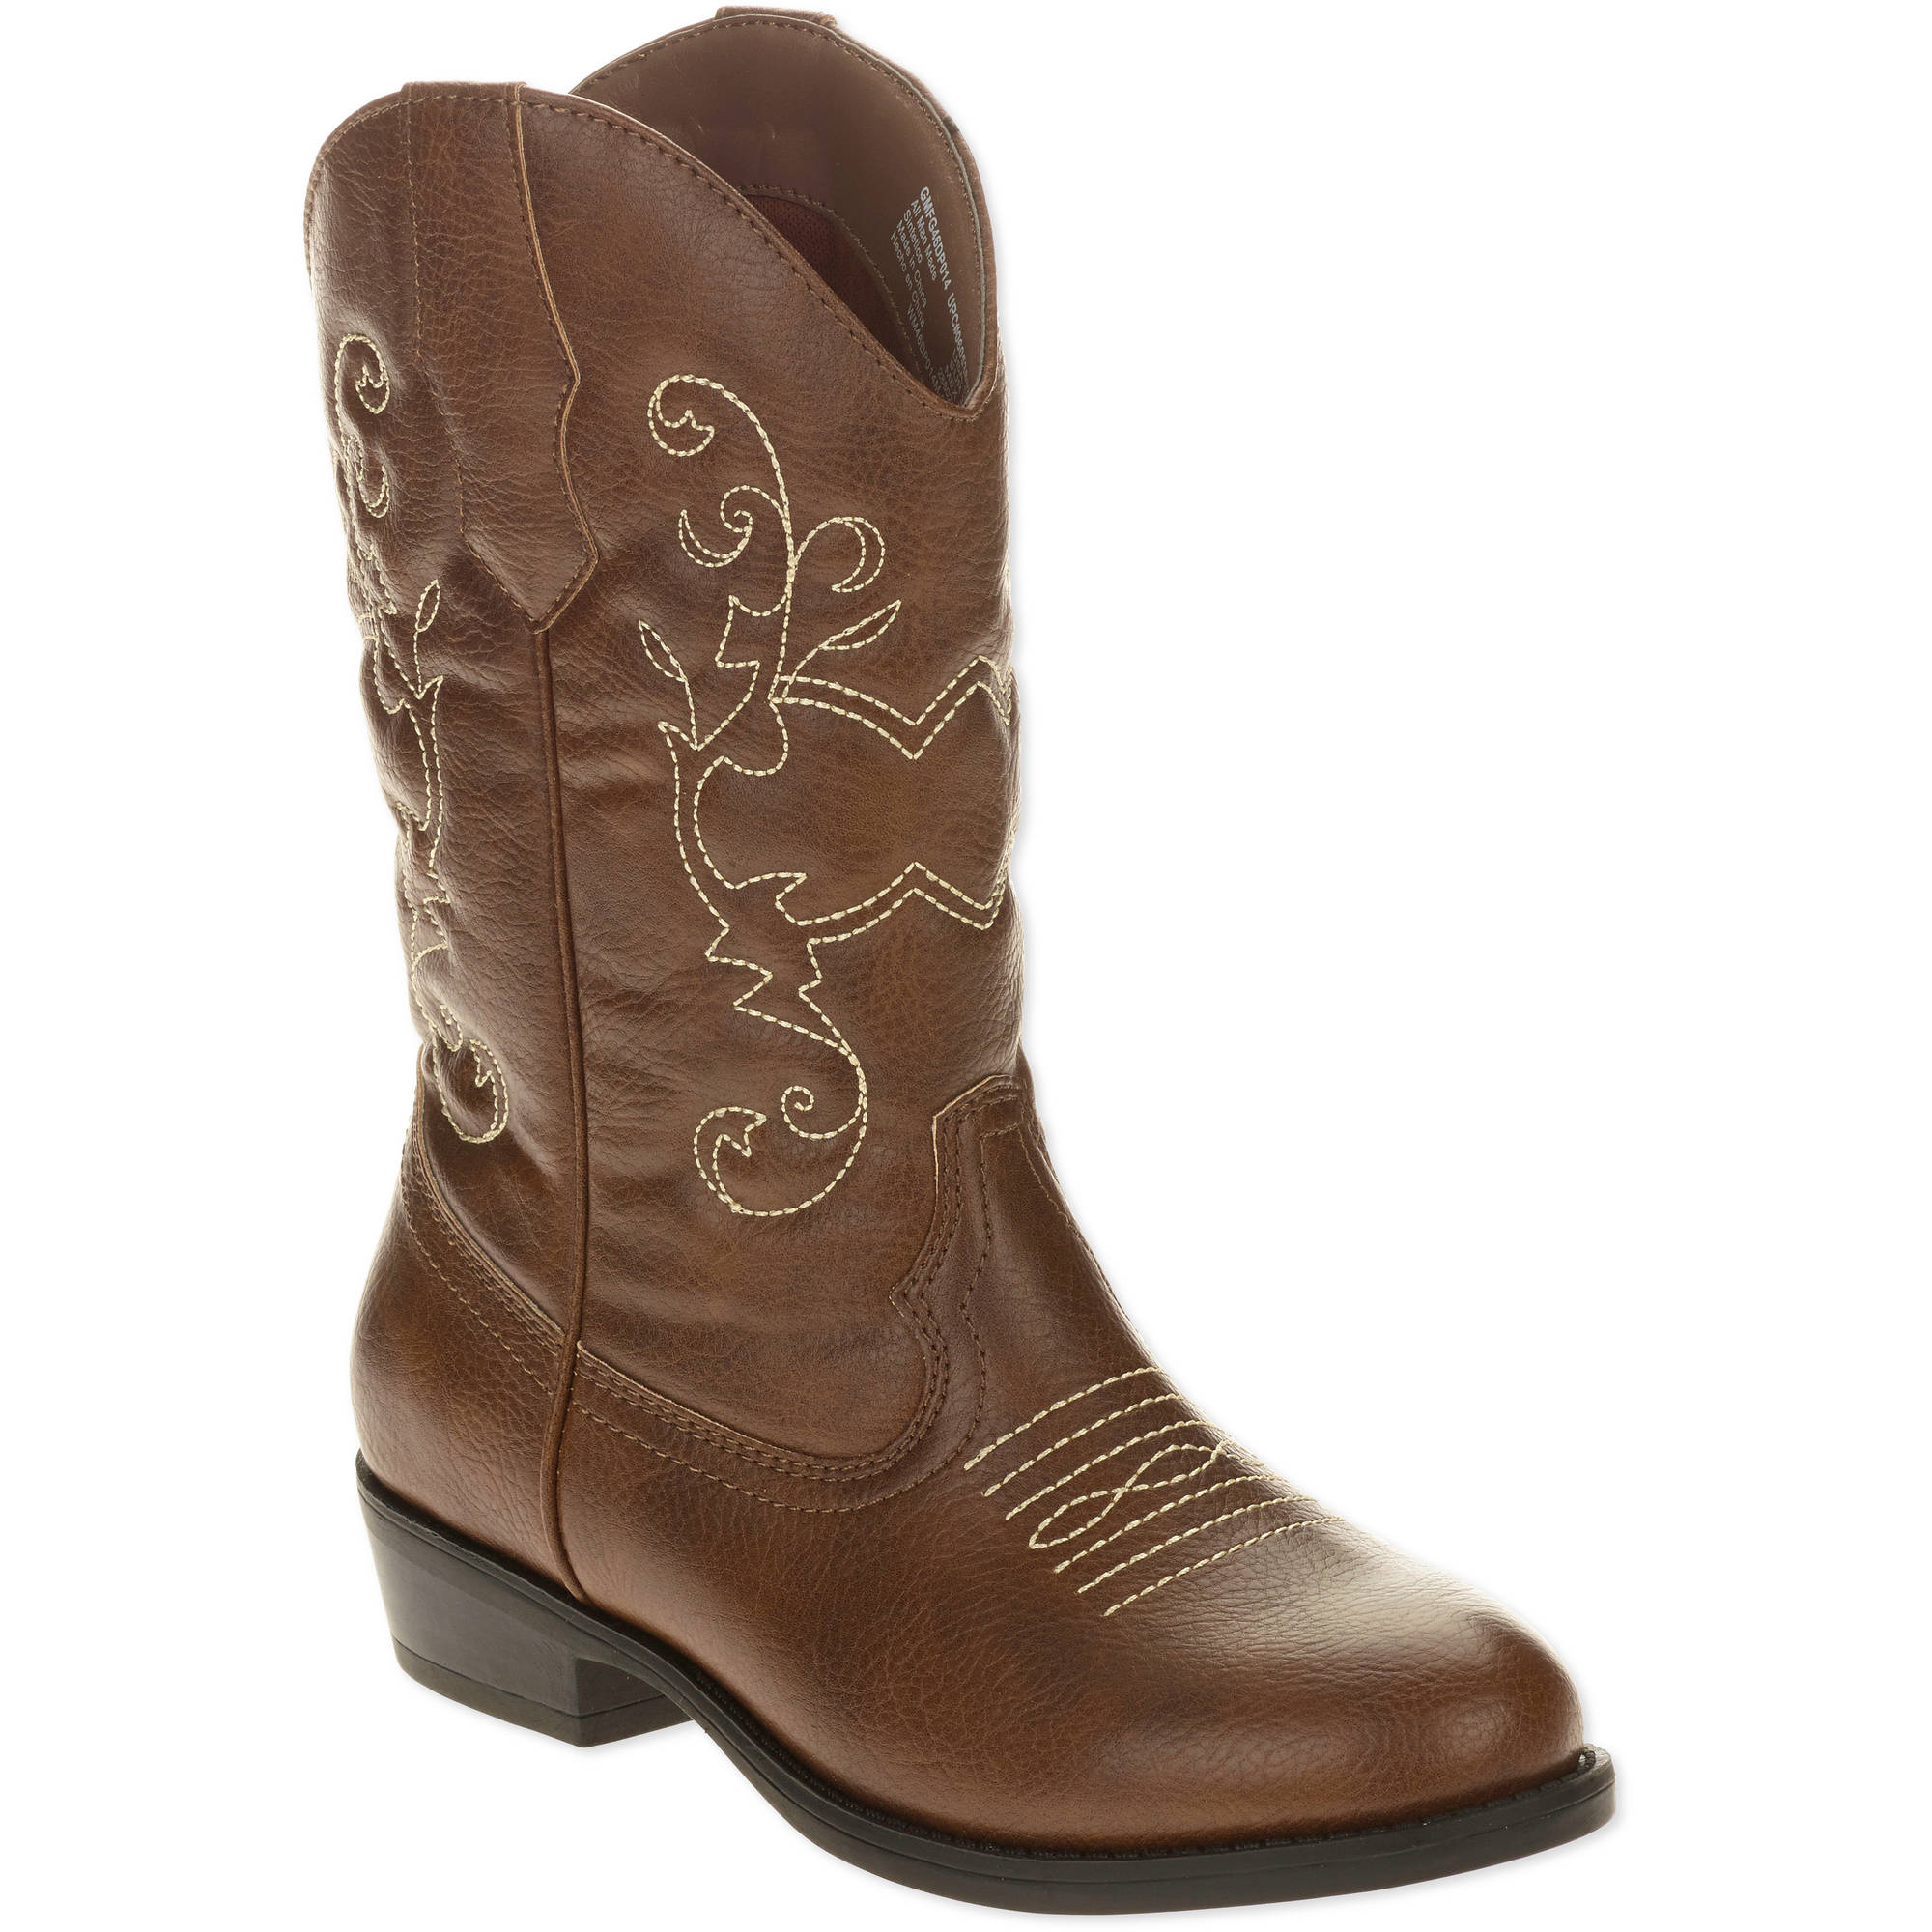 Faded Glory Girls' Cowboy Boot ONLINE ONLY